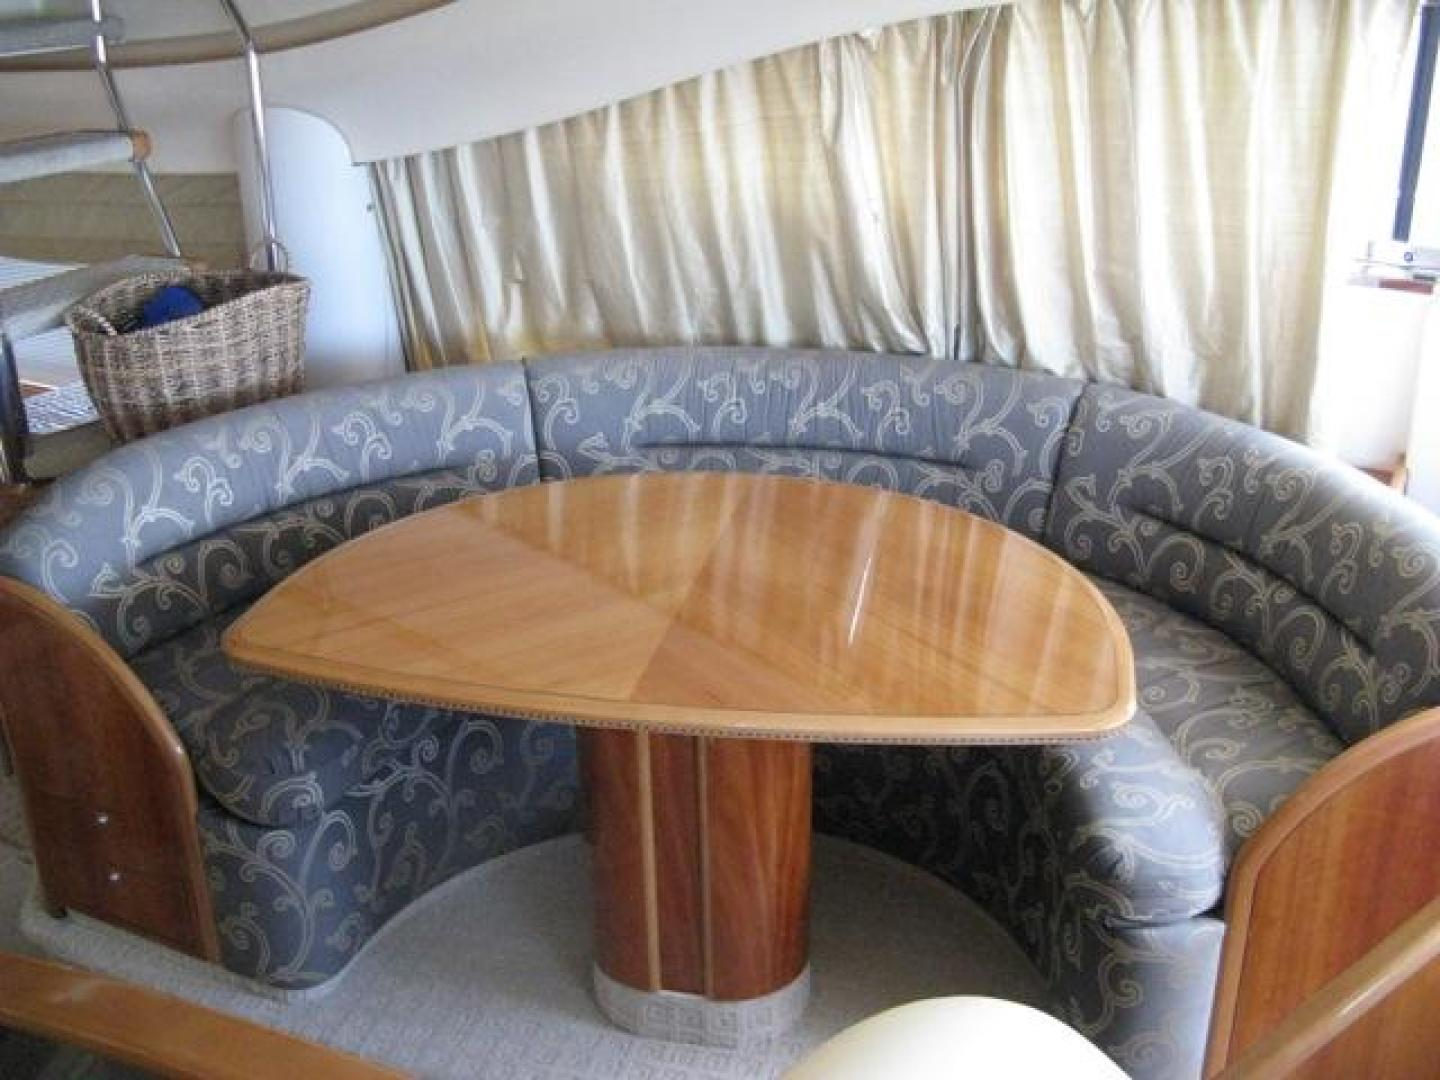 Viking-65 Sports Cruiser 2002-Prima Donna Stuart-United States-Dinette-924250 | Thumbnail